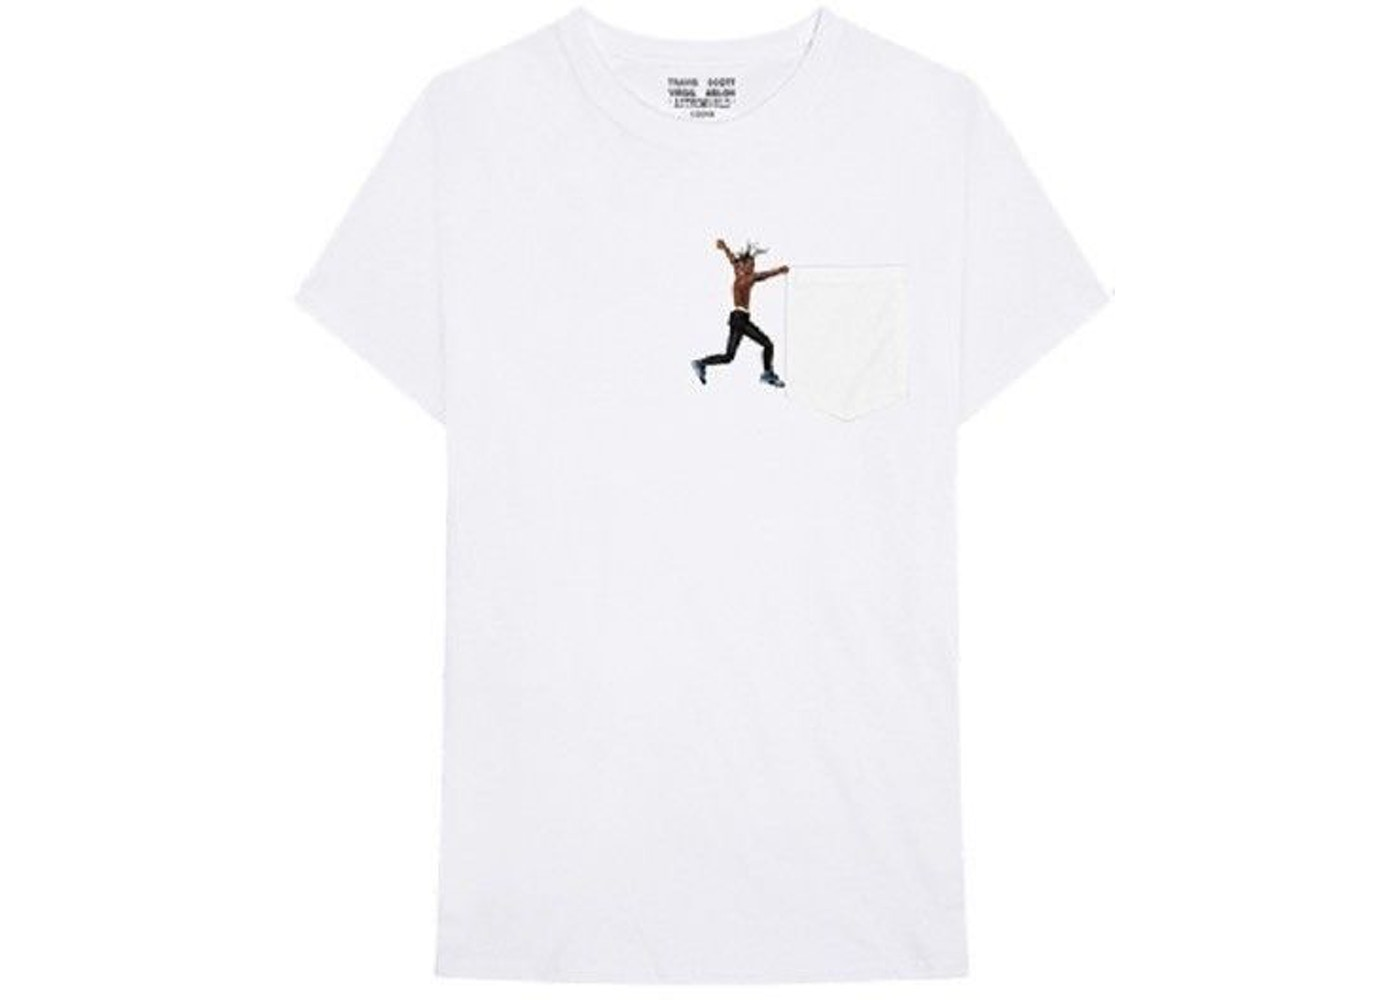 be971df2d416 Travis Scott x Virgil Abloh By A Thread Tee (Cactus Jack Version ...